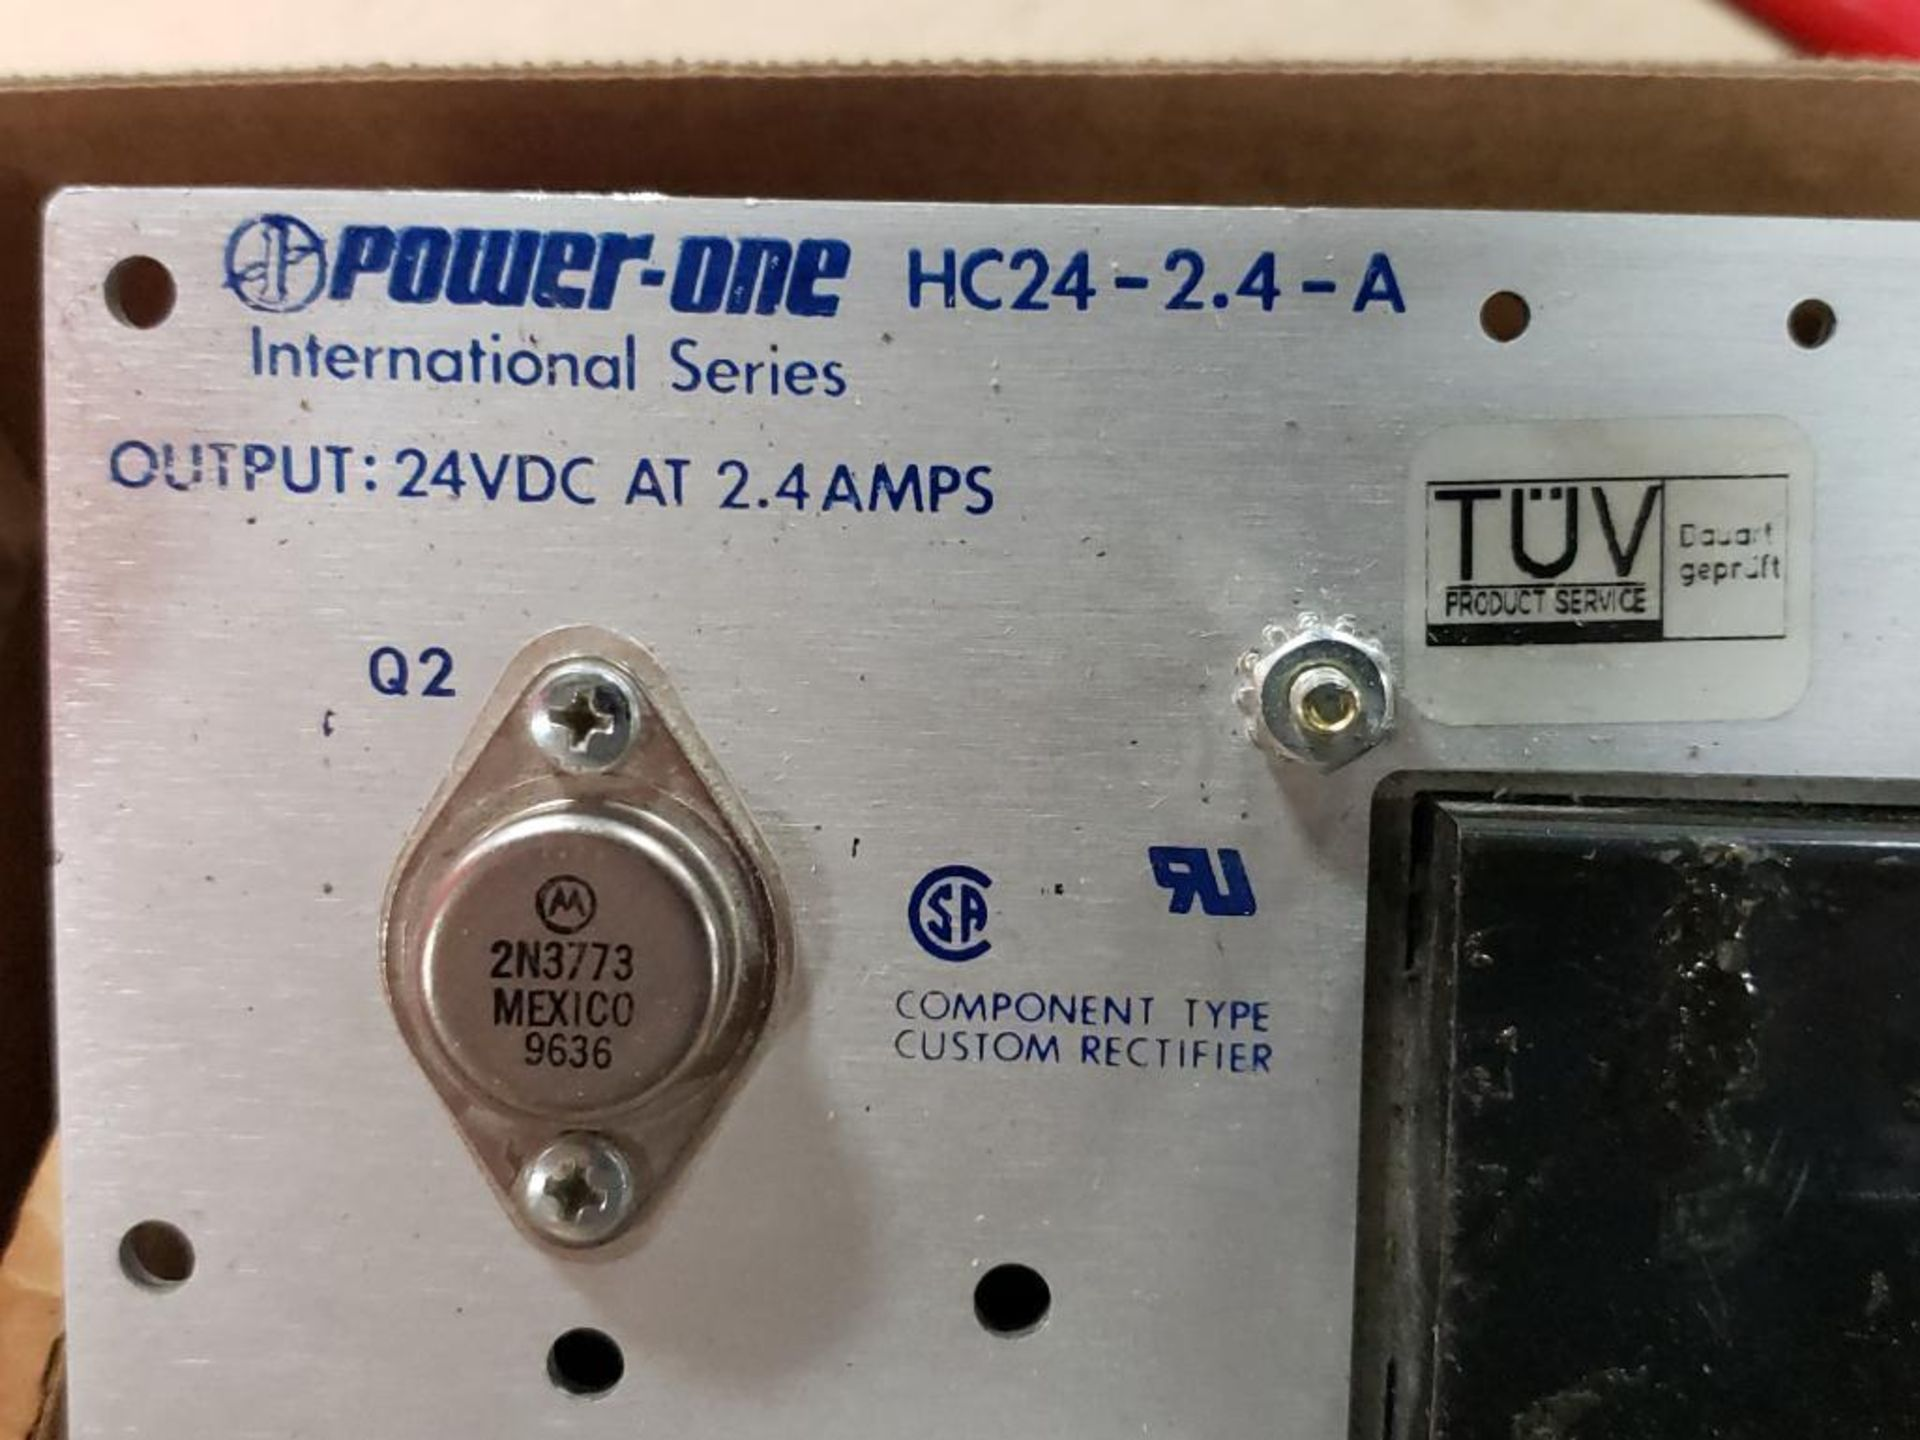 Qty 2 - Power One power supply. HC24-2.4-A, HSN-15-4.5. - Image 3 of 9